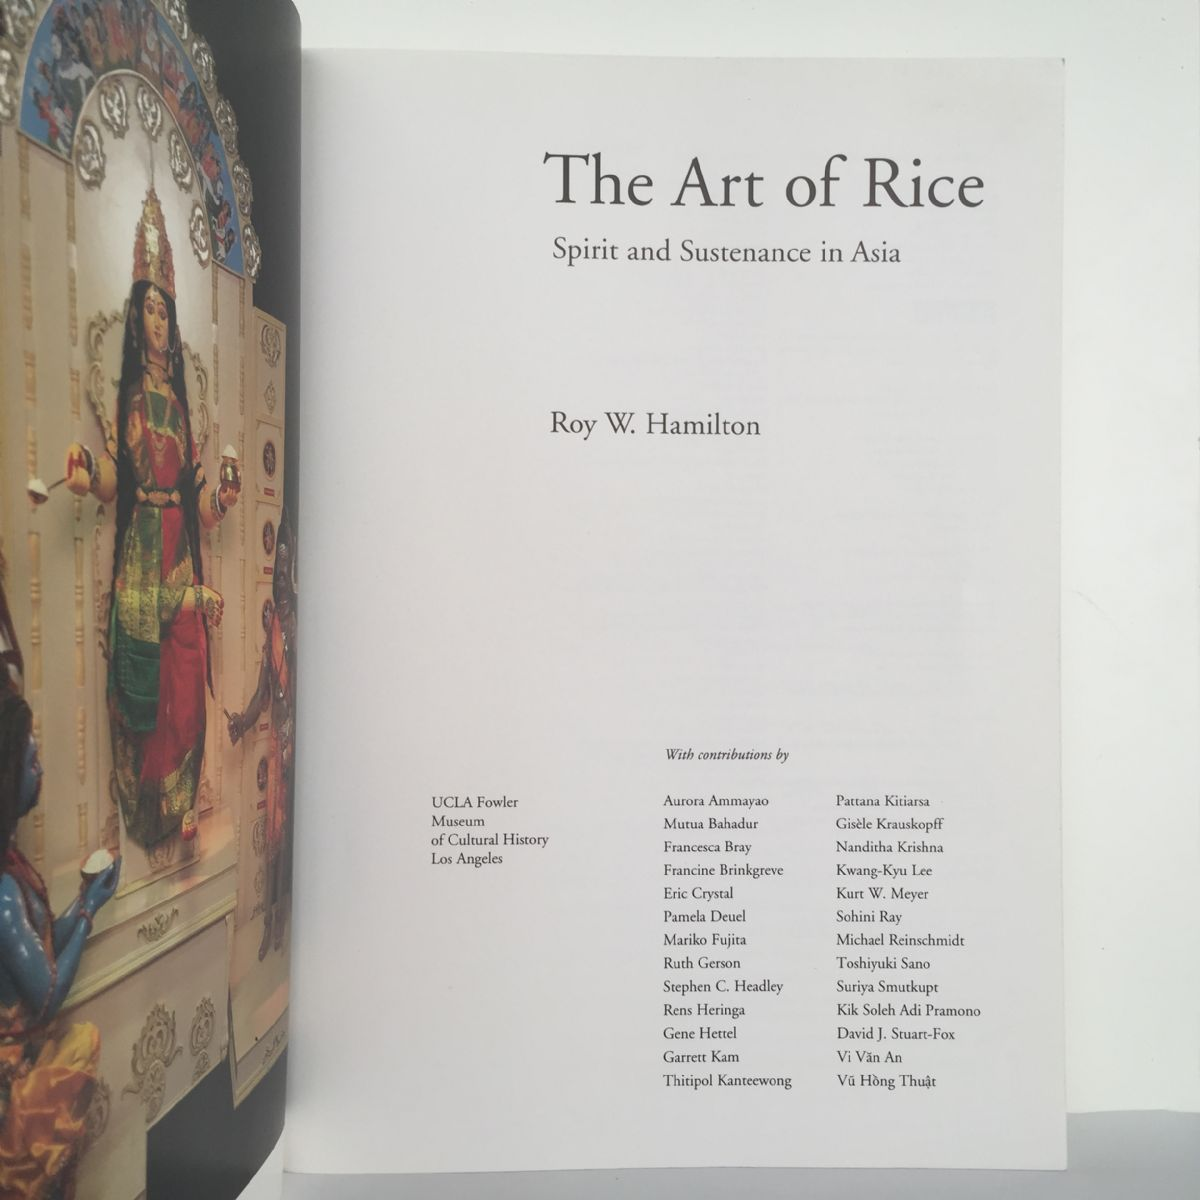 The Art of Rice: Spirit and Sustenance in Asia